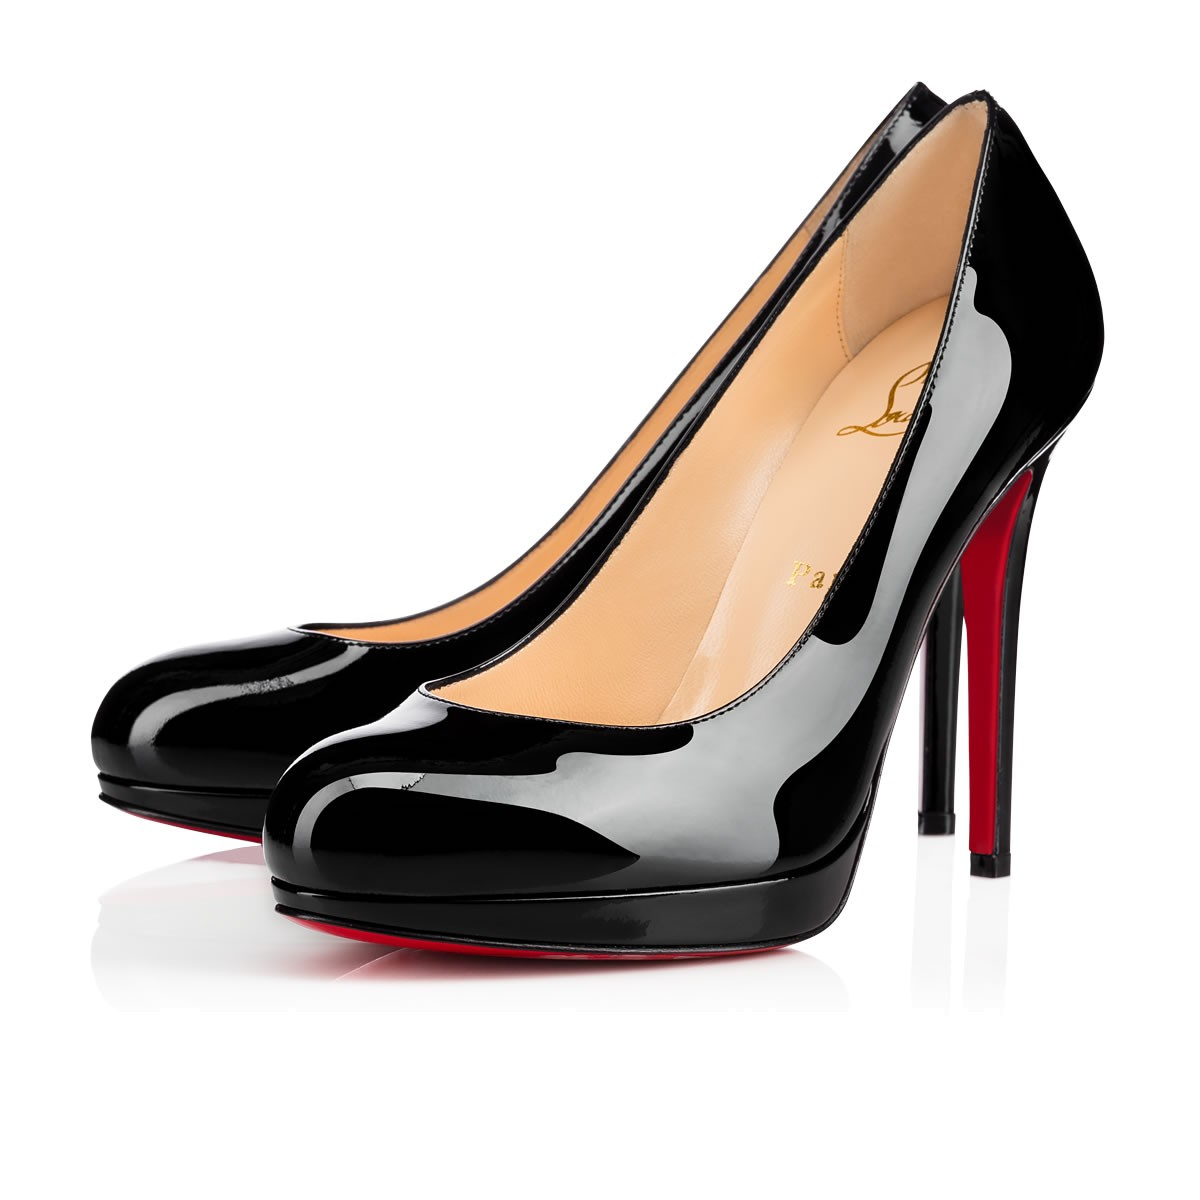 c87610346c3 Buy Christian Louboutin Shoes Now, Pay Later - Shoeaholics Anonymous ...